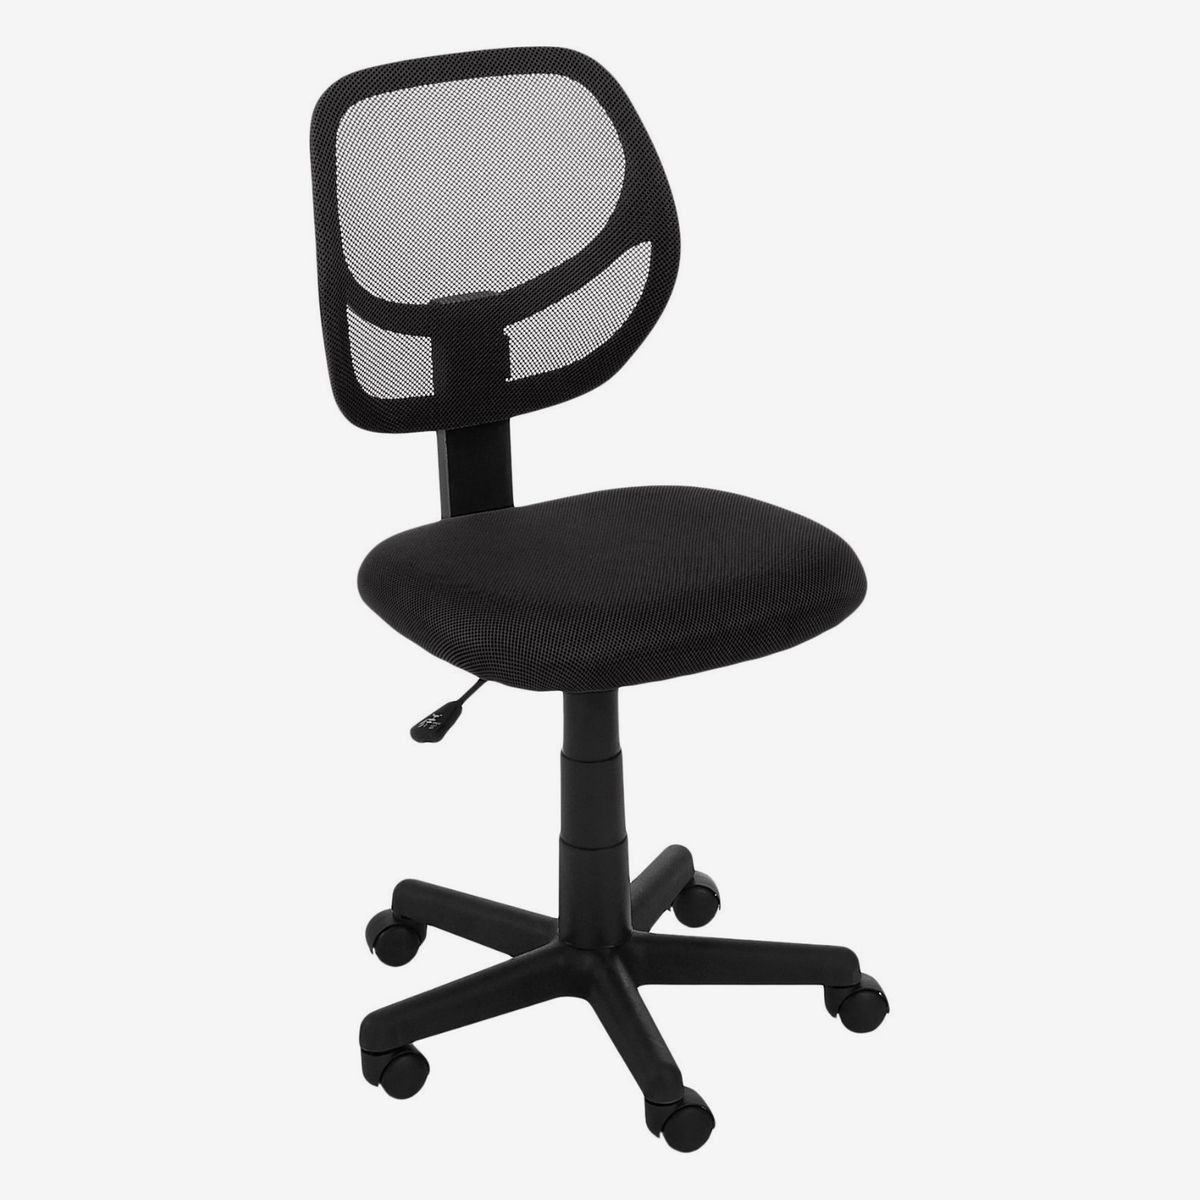 34 Best Office Chairs and Home-Office Chairs 34  The Strategist